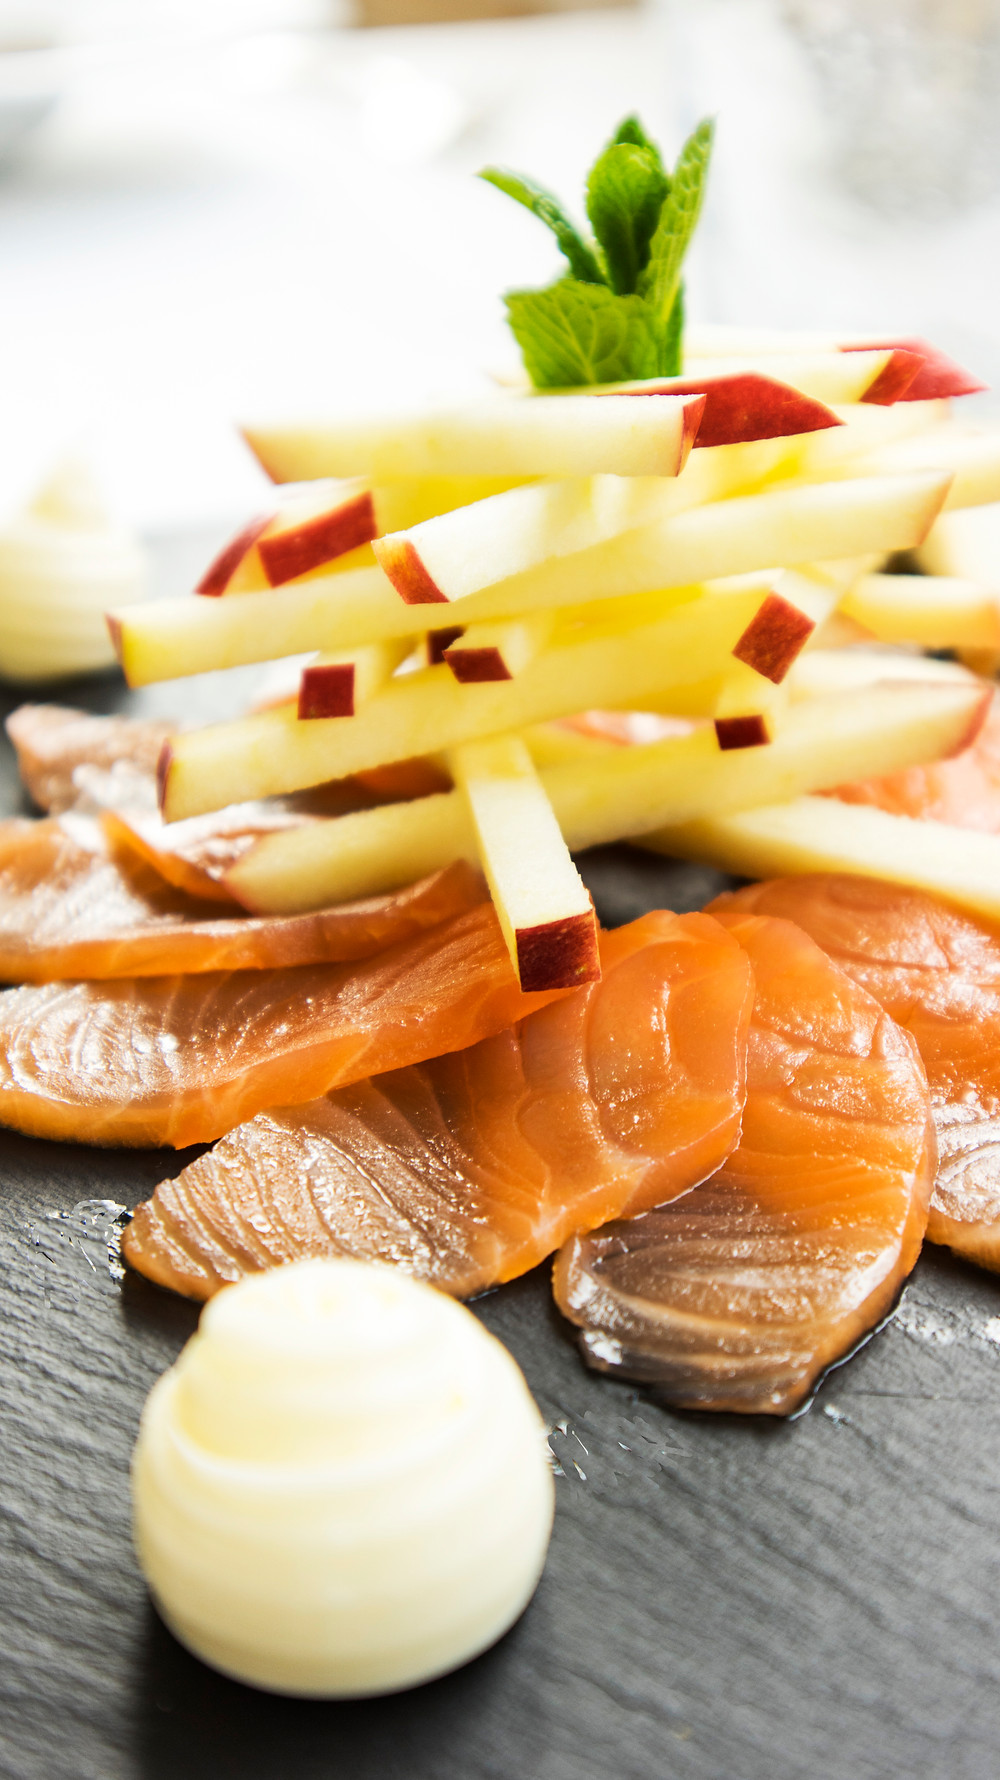 in-house smoked salmon and apple salad